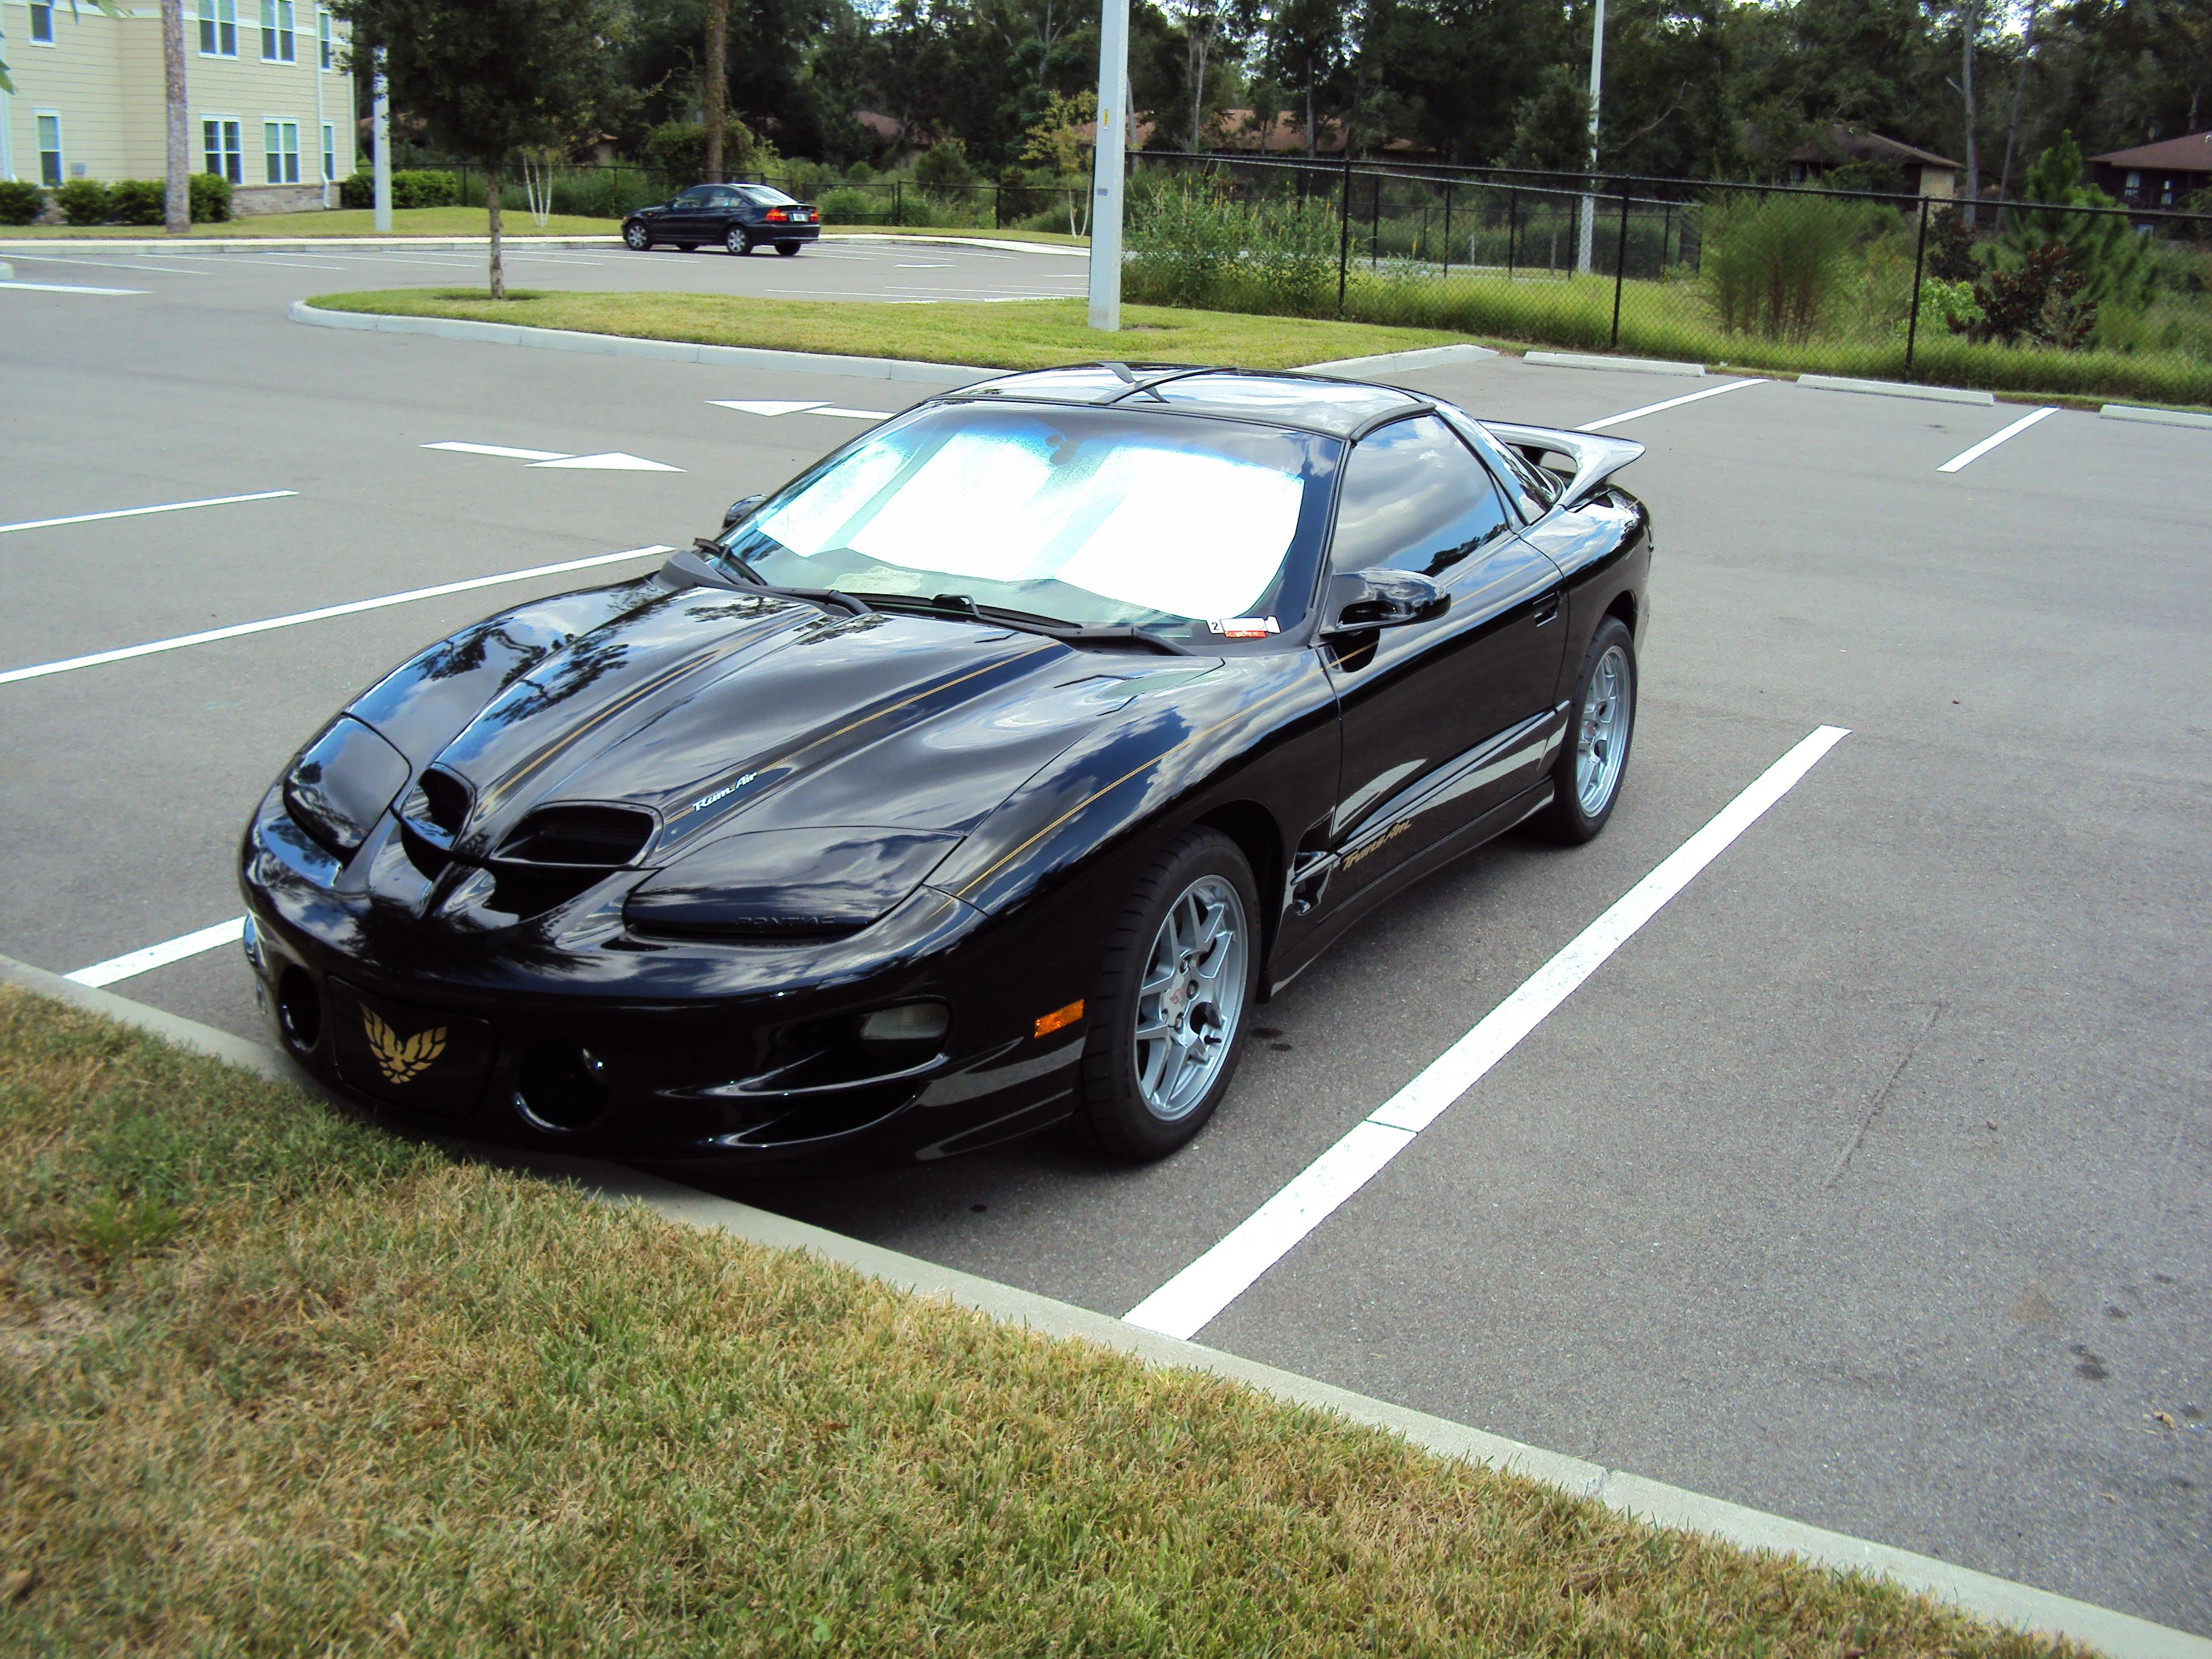 wood81's 1998 Pontiac Trans Am